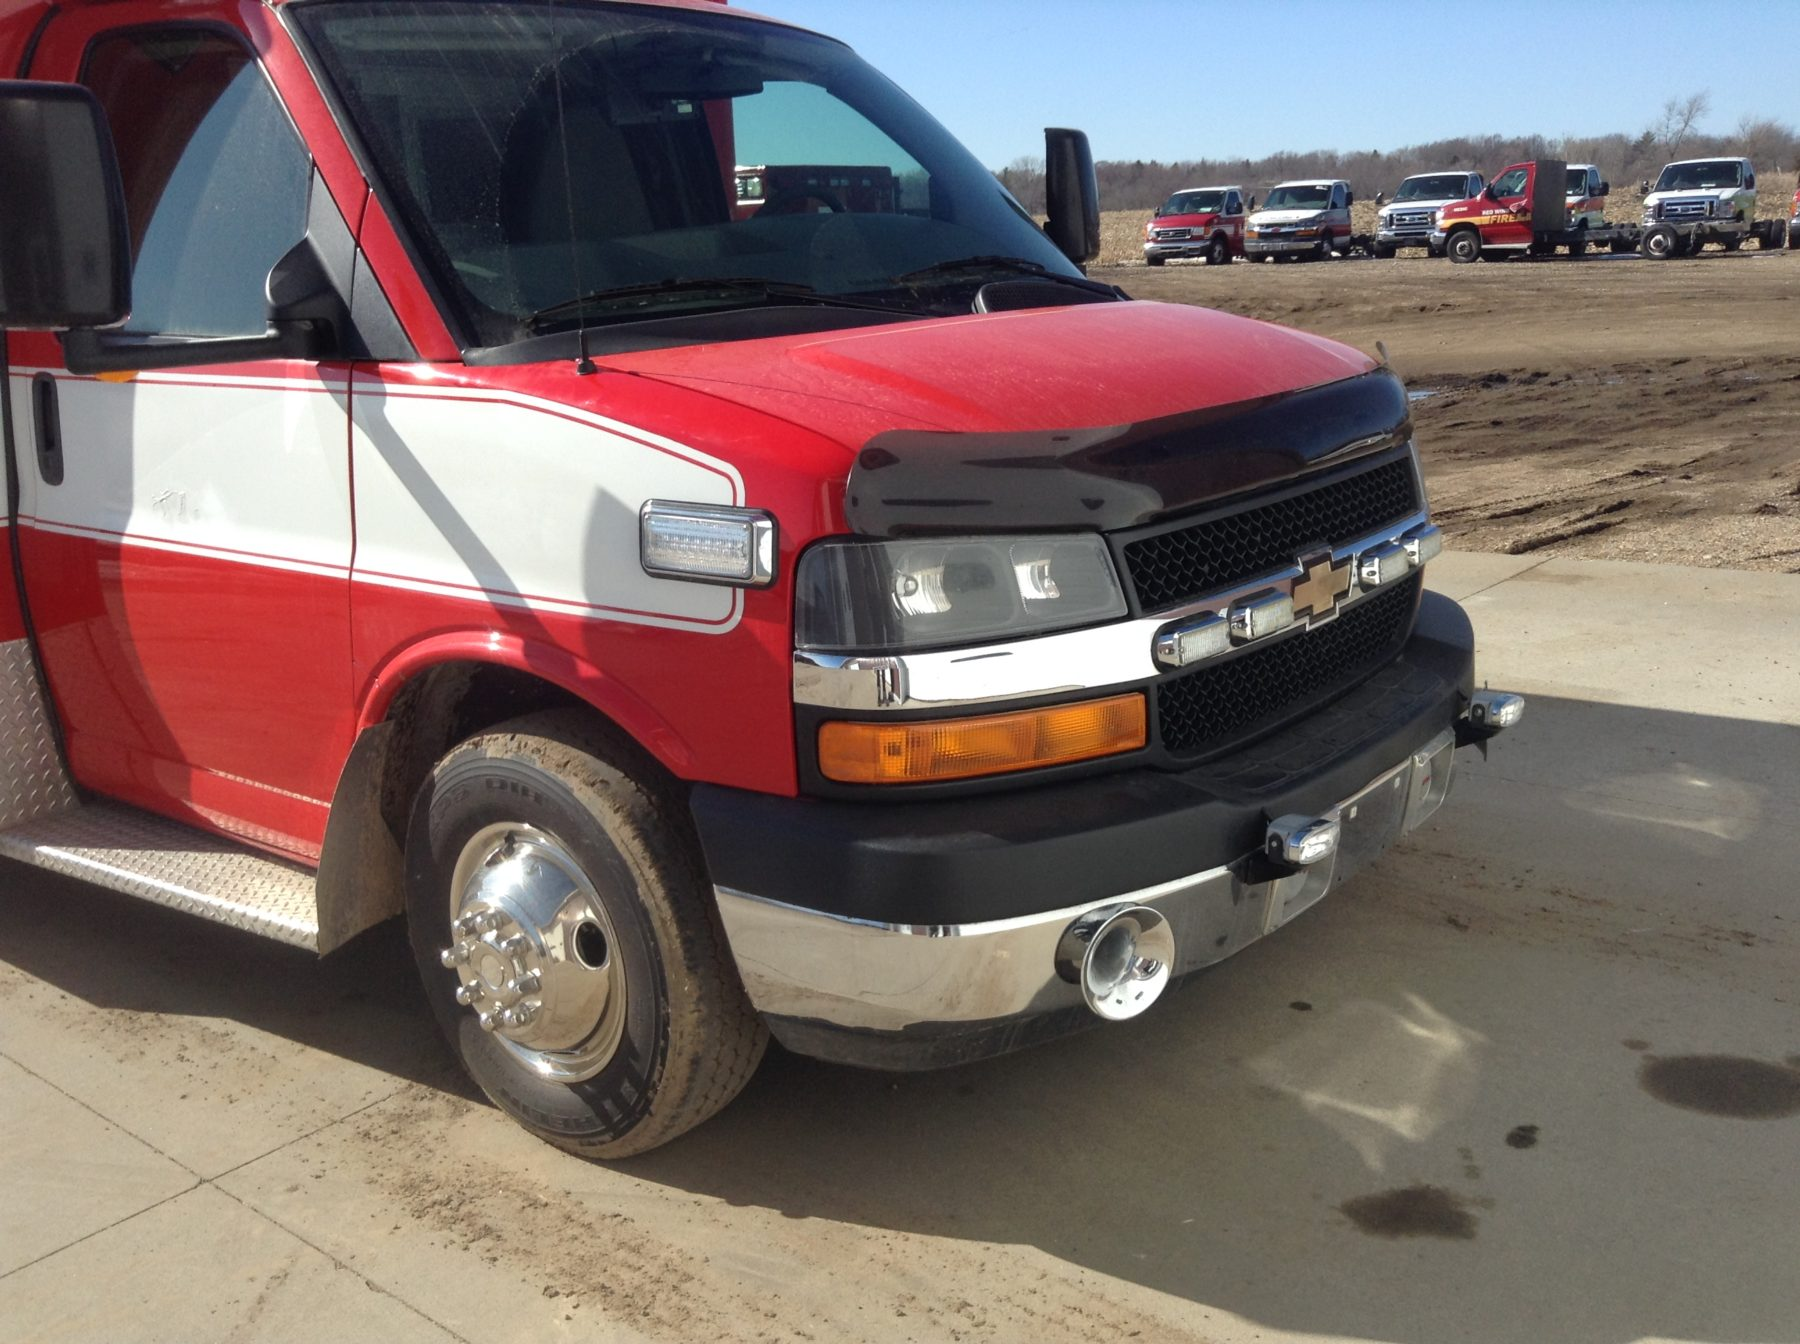 2011 Chevrolet G4500 Type 3 Ambulance For Sale – Picture 4